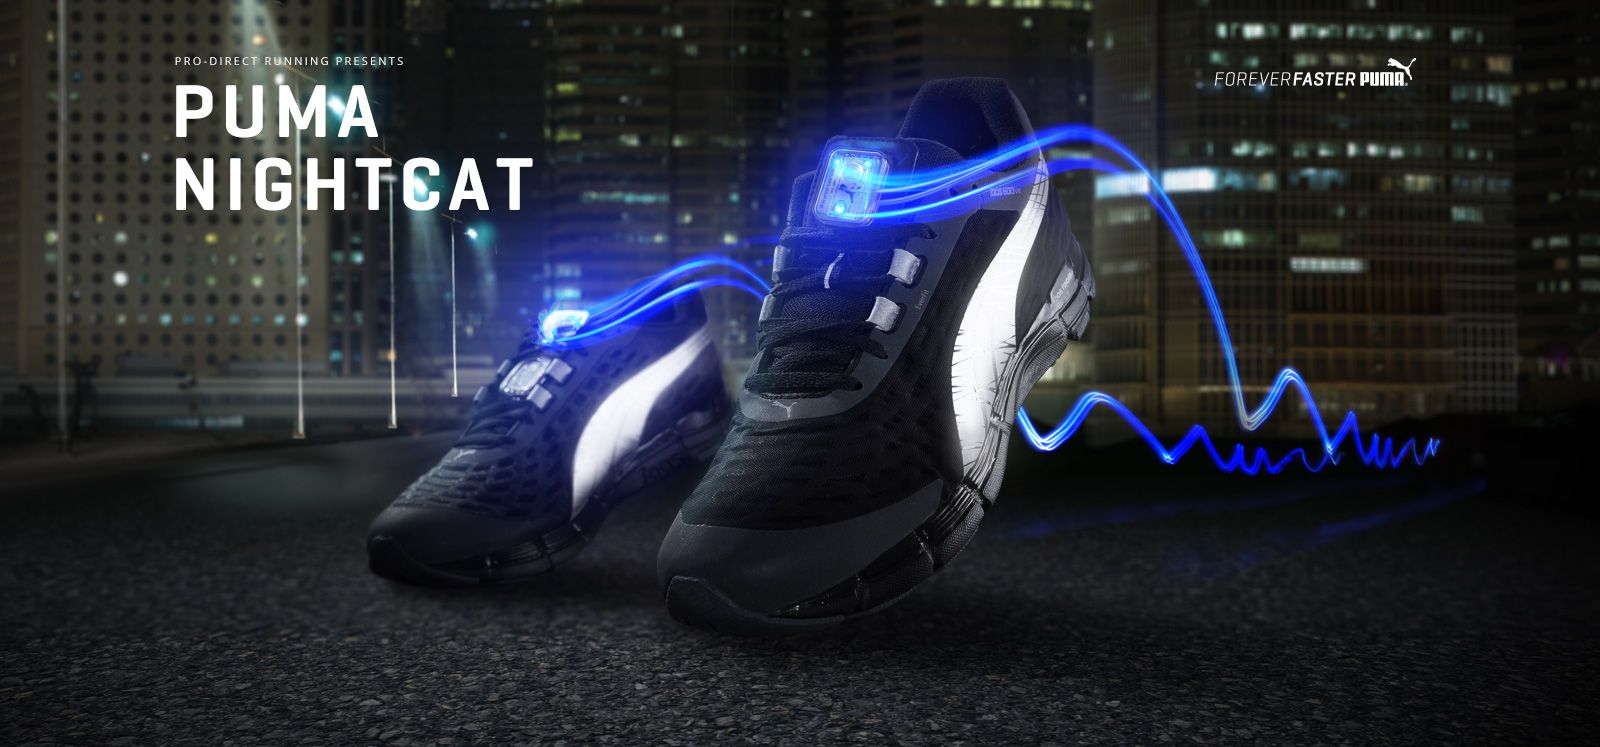 puma nightcat